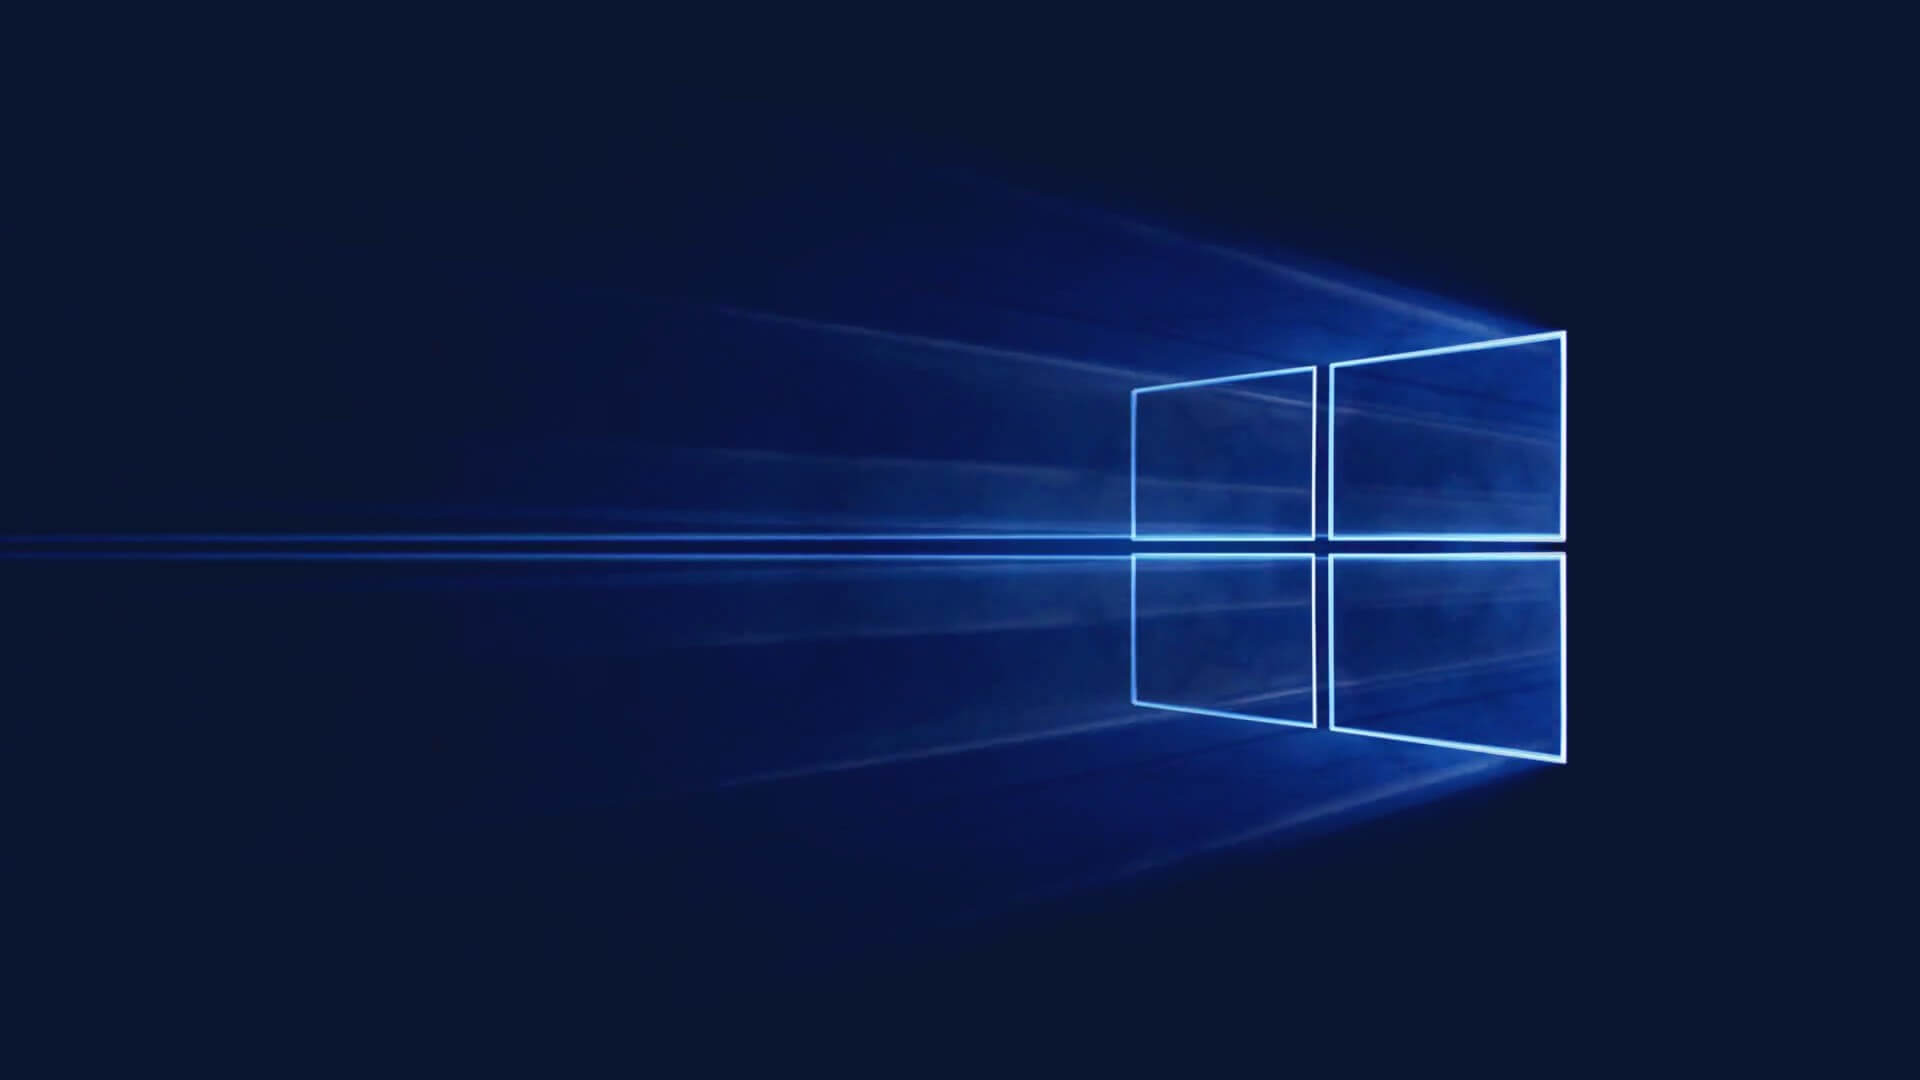 Researchers Find That Cortana Can Be Used To Hack Windows 10 PCs